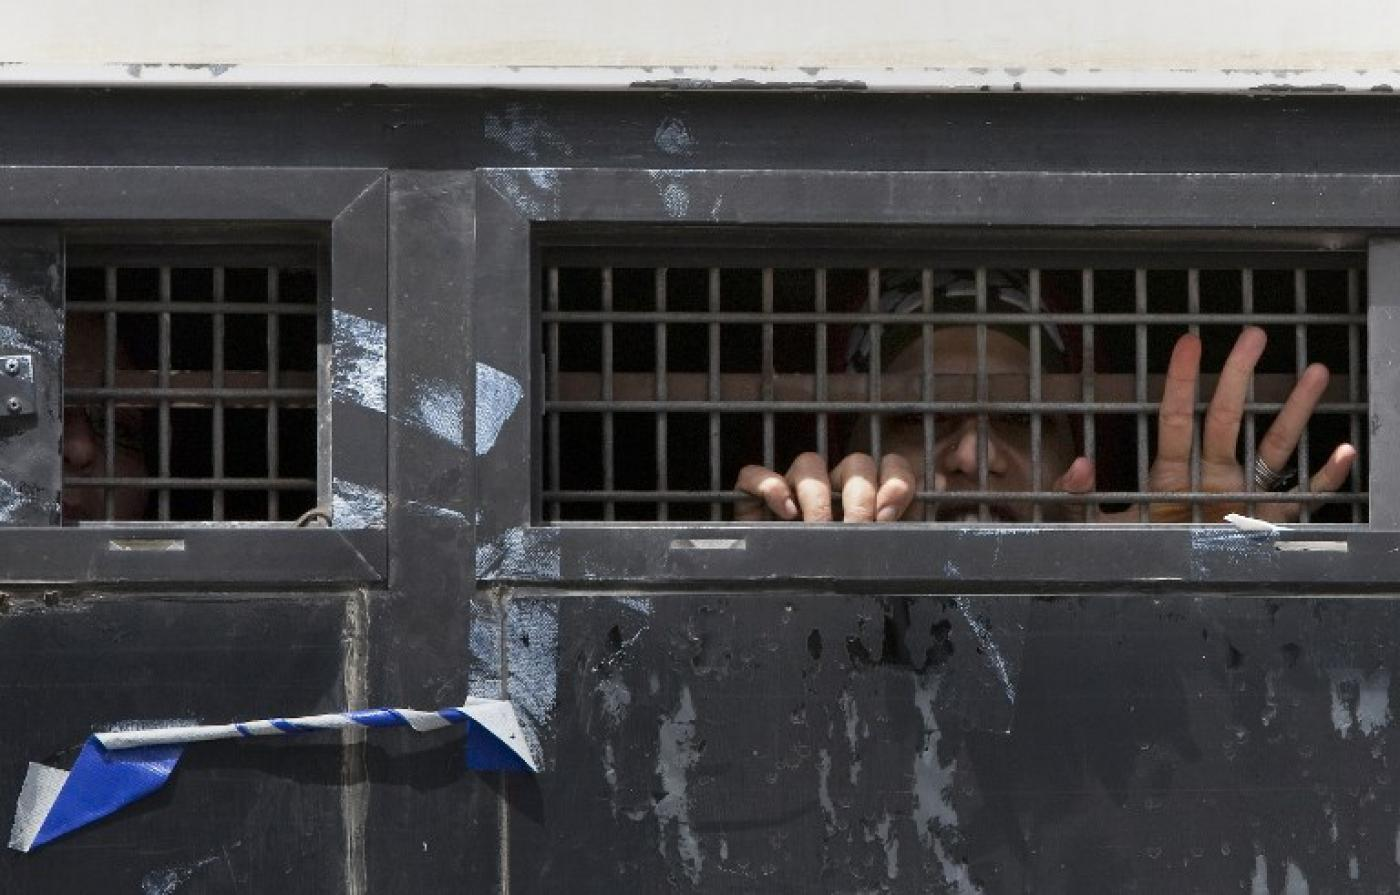 Israel's prison excursion: A journey of unspeakable misery   Middle